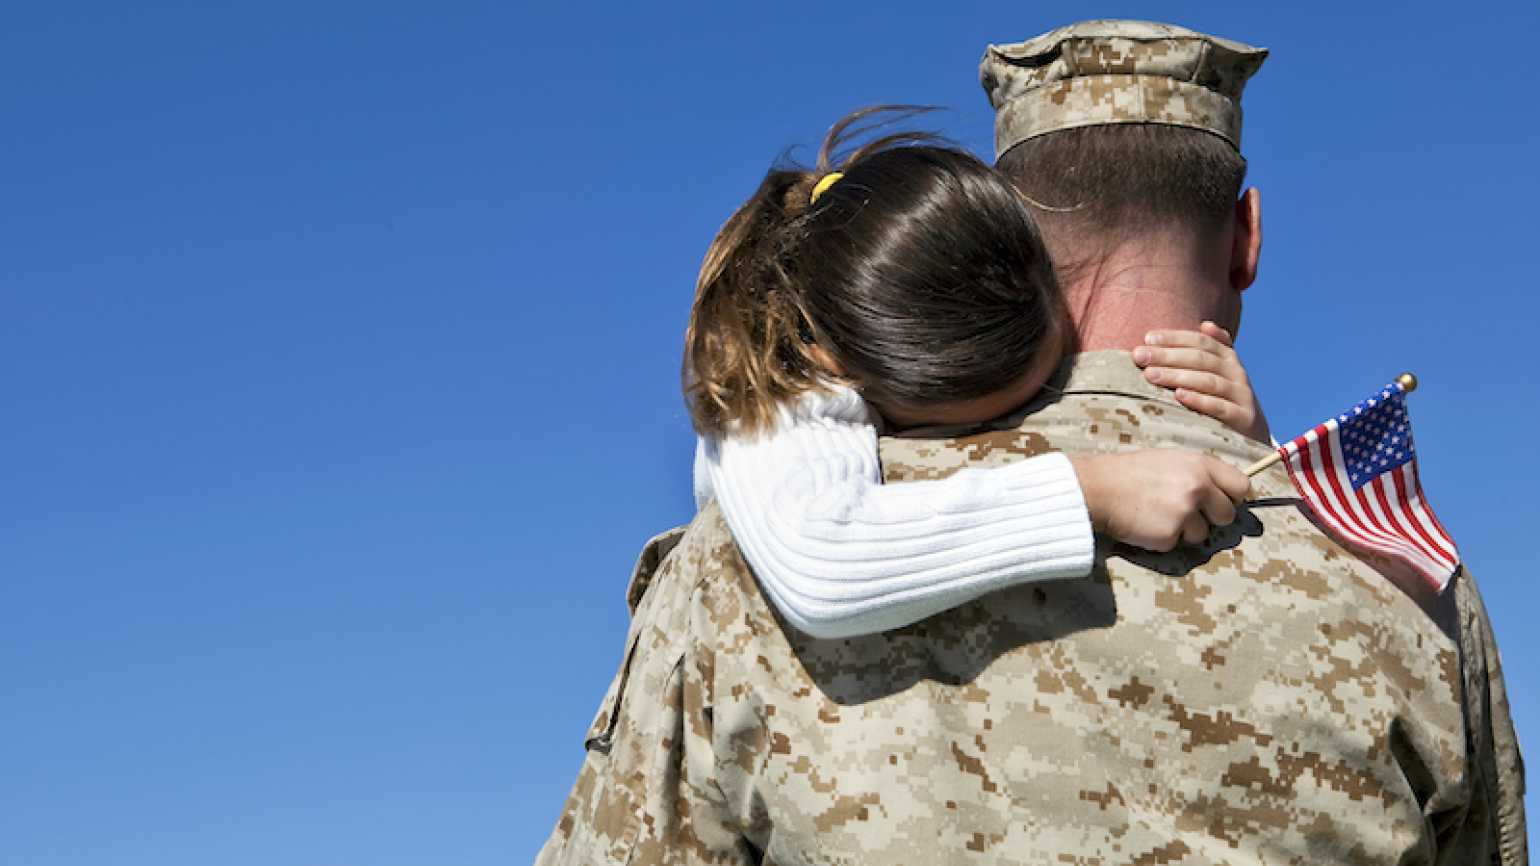 A soldier hugs his daughter. Photo by videodet for Thinkstock, Getty Images.